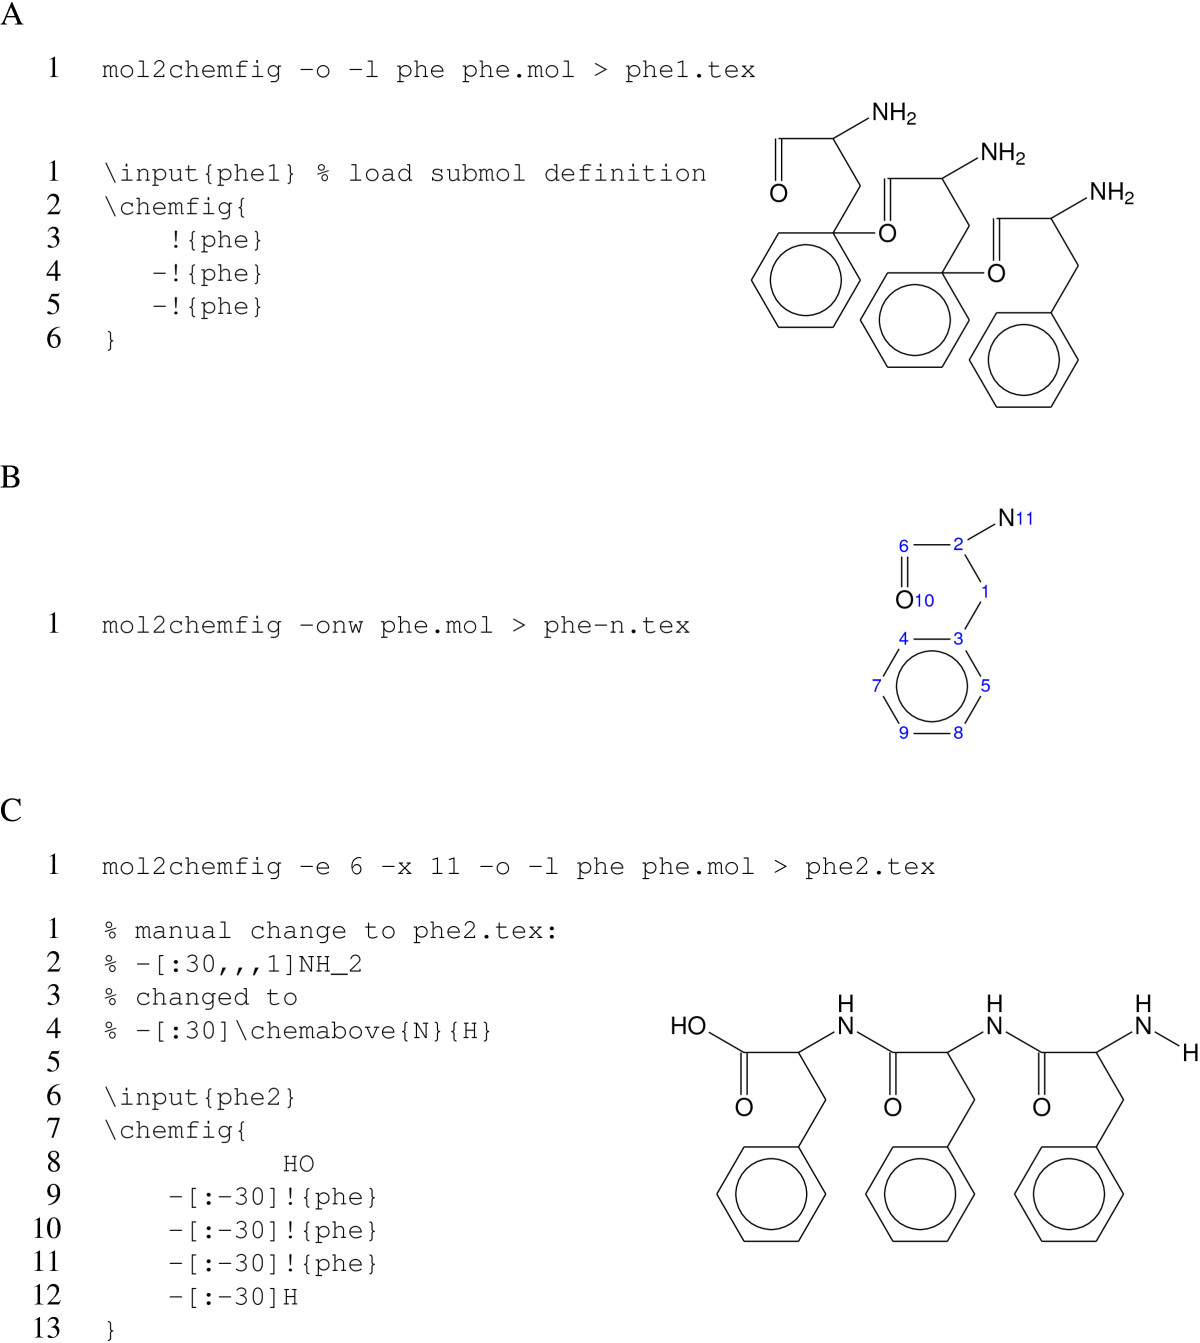 http://static-content.springer.com/image/art%3A10.1186%2F1758-2946-4-24/MediaObjects/13321_2012_Article_361_Fig6_HTML.jpg